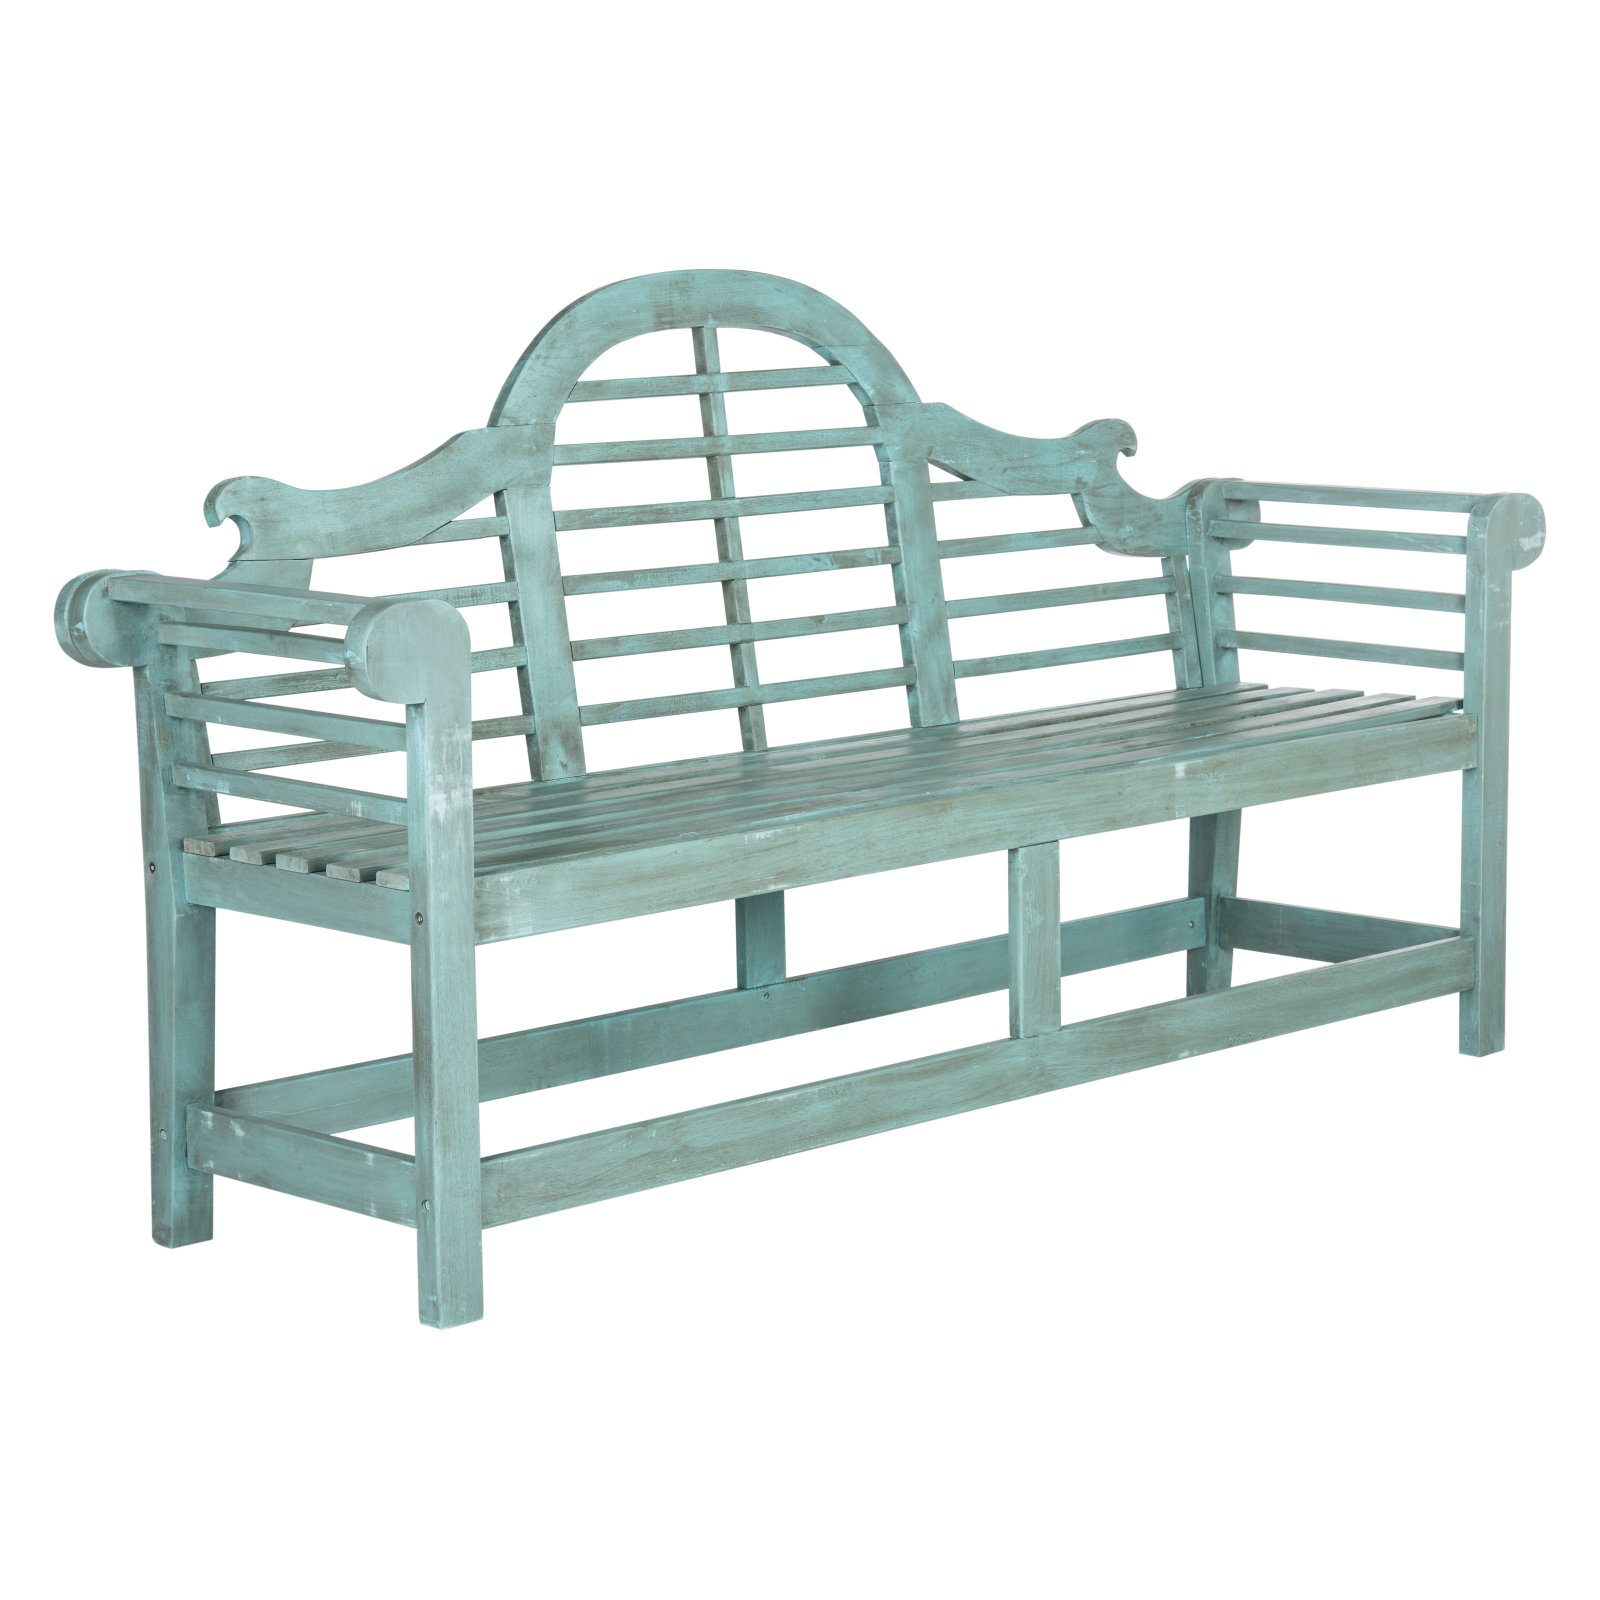 Safavieh Khara Outdoor Bench, Multiple Colors by Safavieh